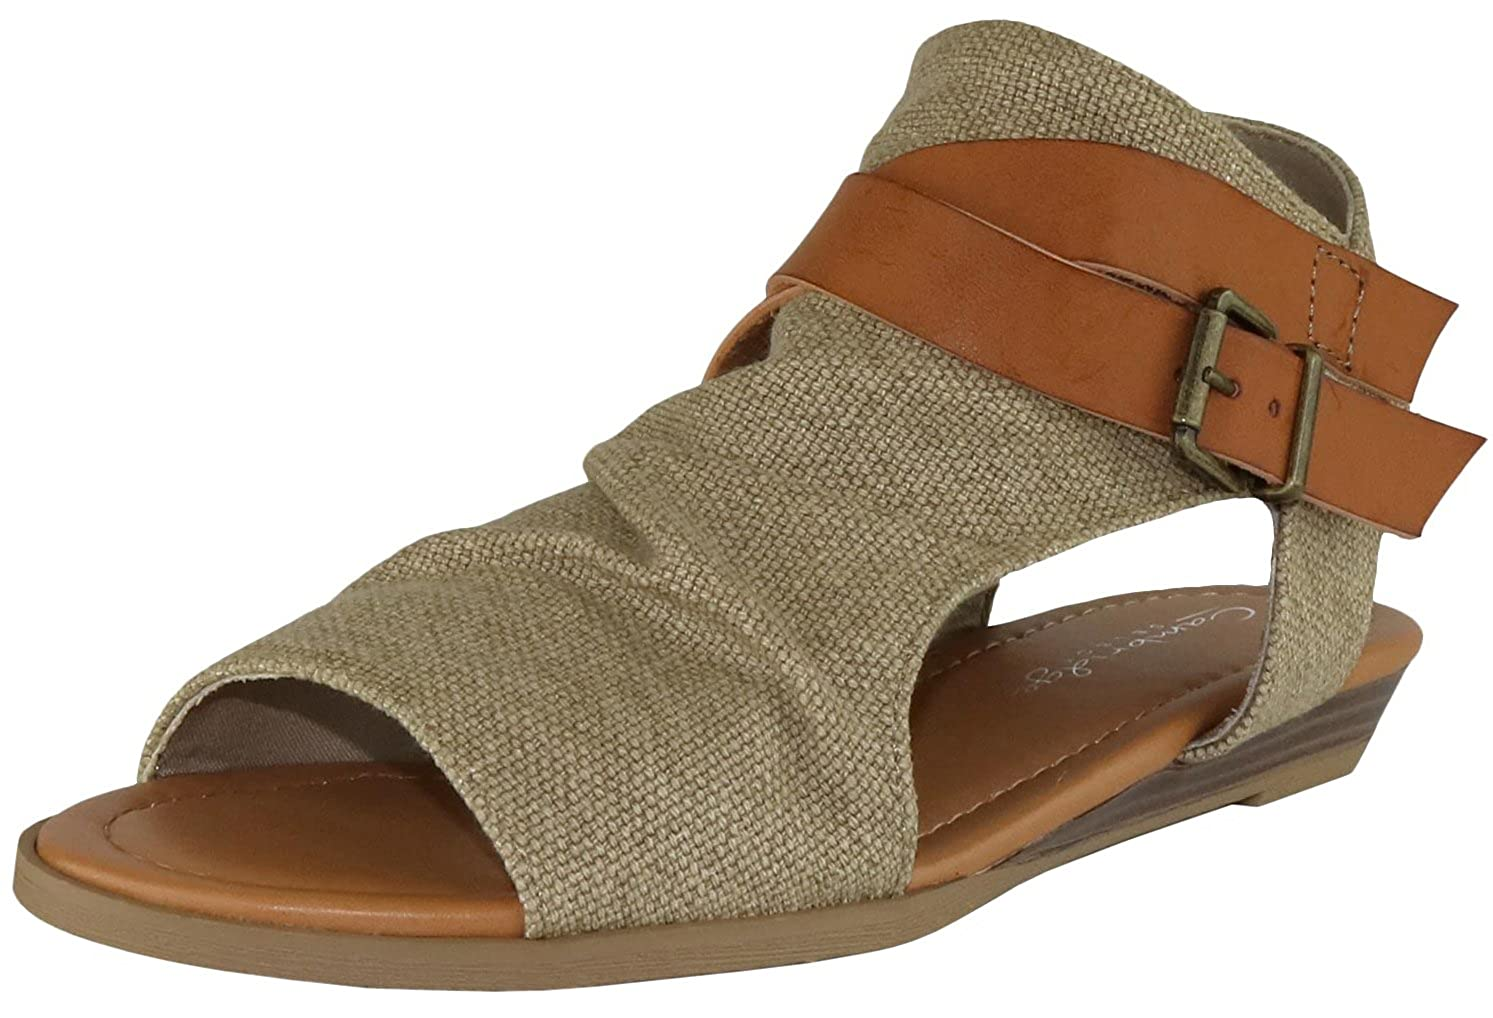 Natural Cambridge Select Women's Crisscross Strappy Buckle Cutout Stacked Low Wedge Sandal